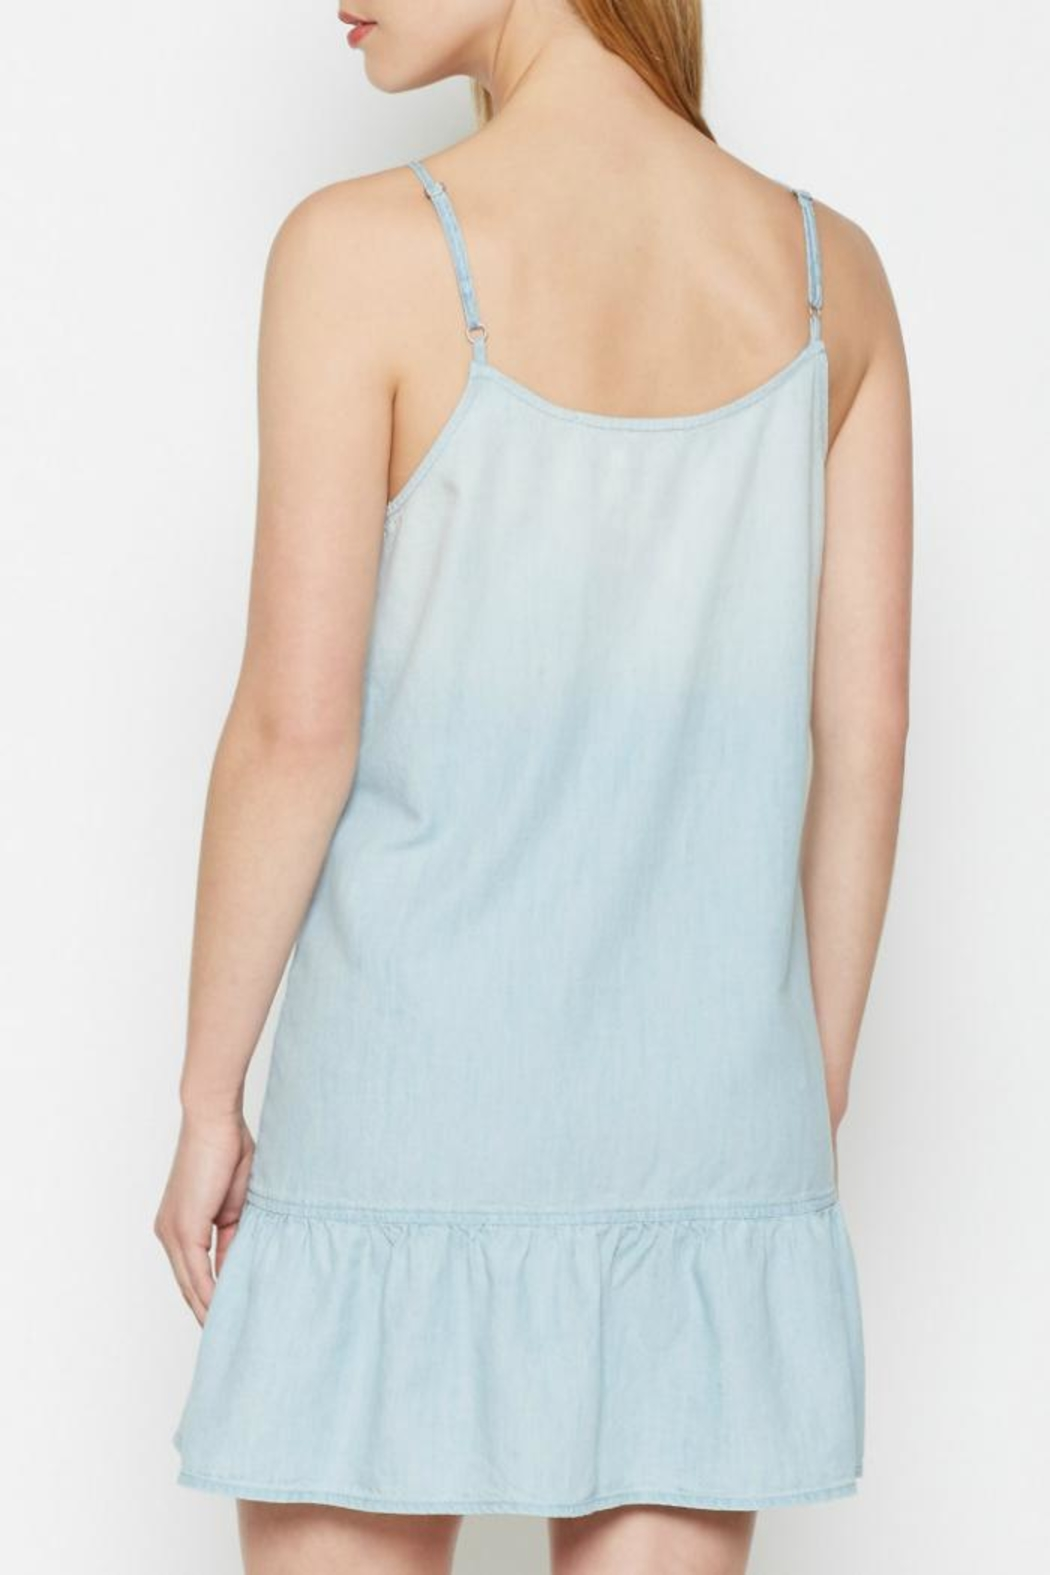 Joie Kunala Chambray Dress - Front Full Image